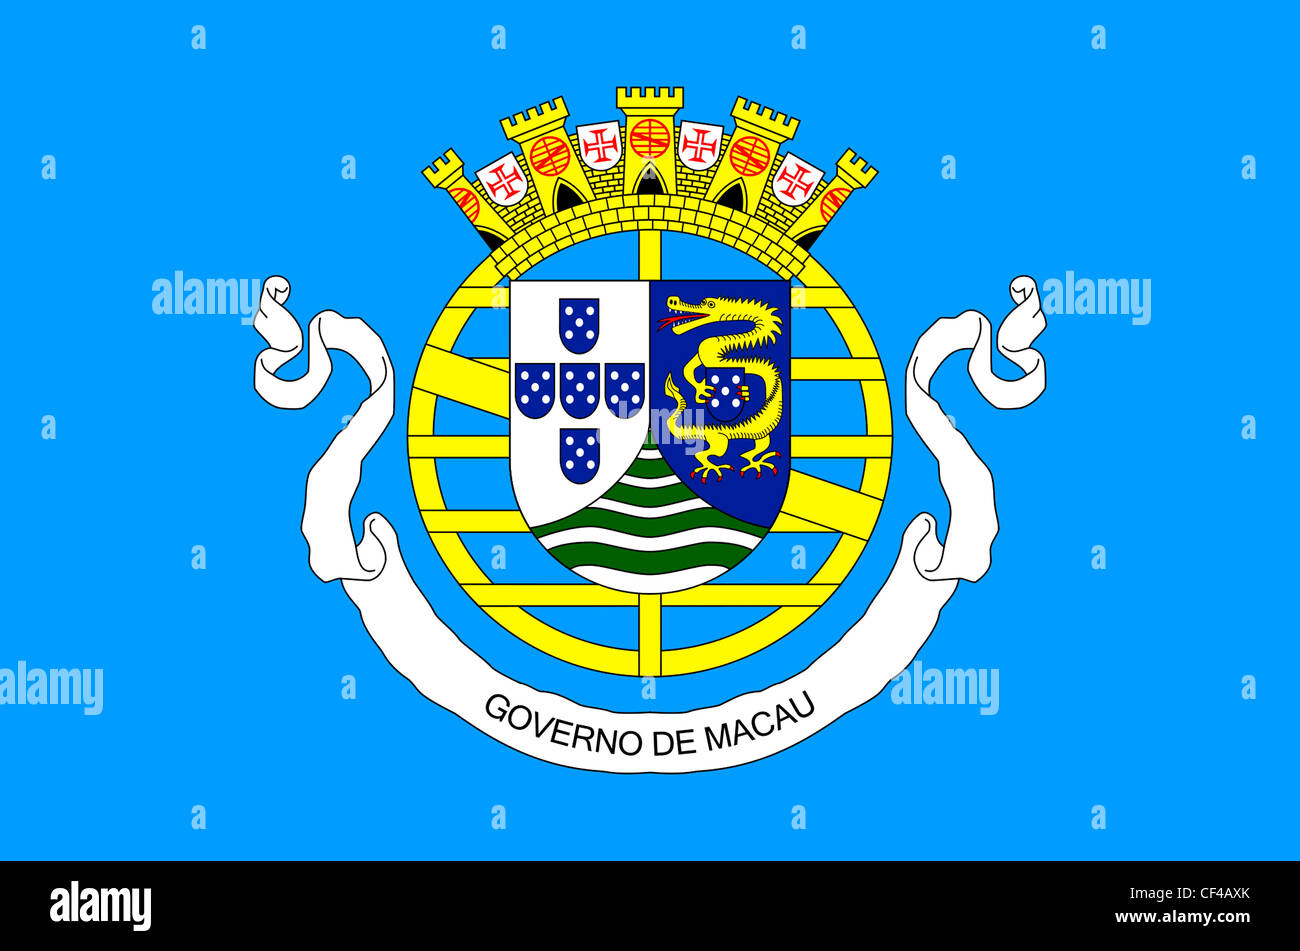 Flag of the Government of Portuguese Macau 1976 to 1999. - Stock Image